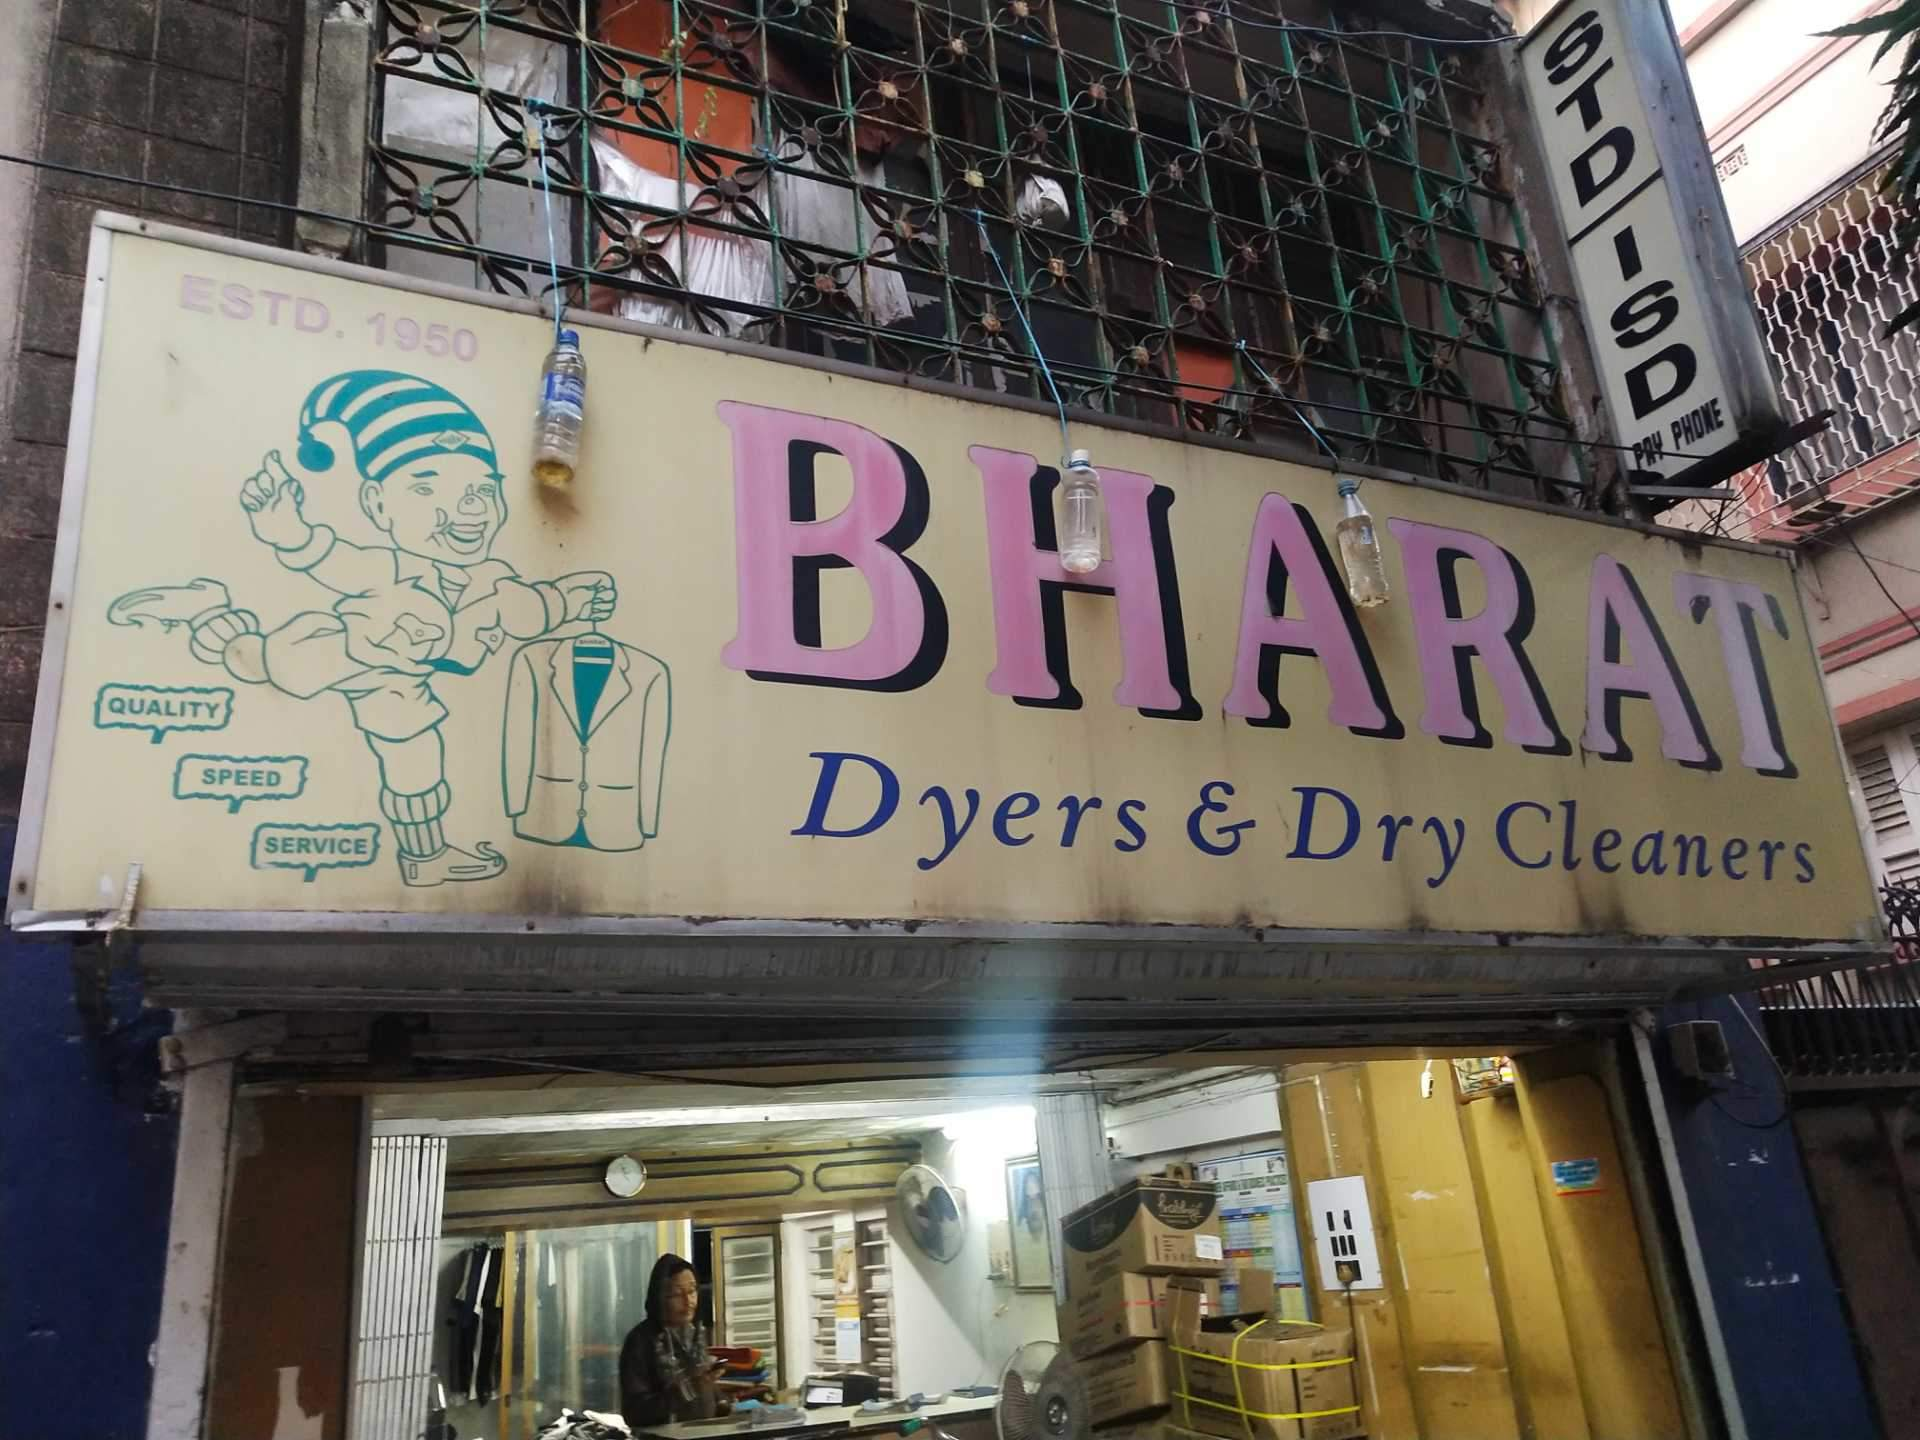 Bharat Dyers & Dry Cleaners